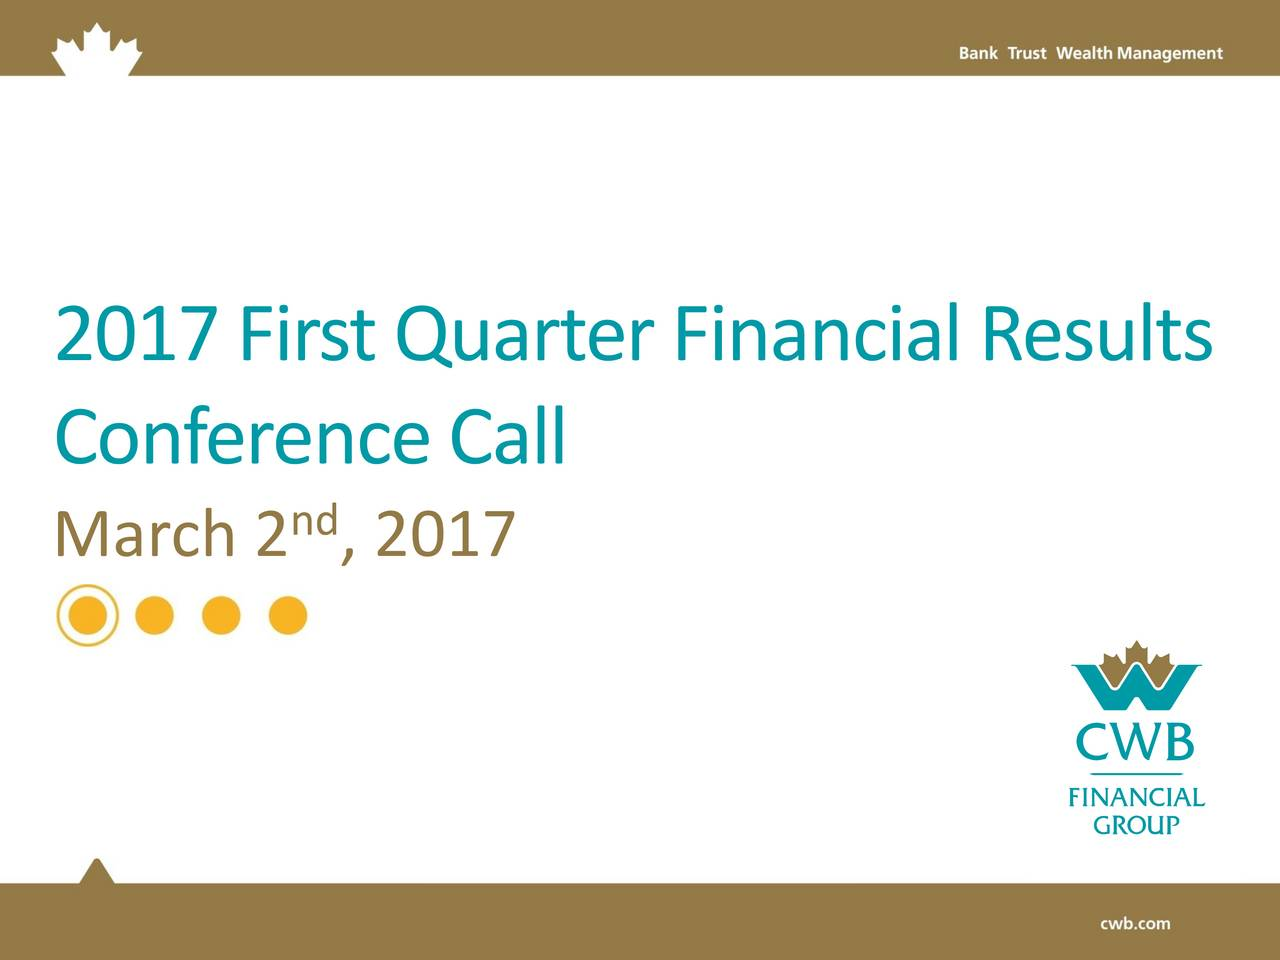 ConferenceCall nd March 2 , 2017